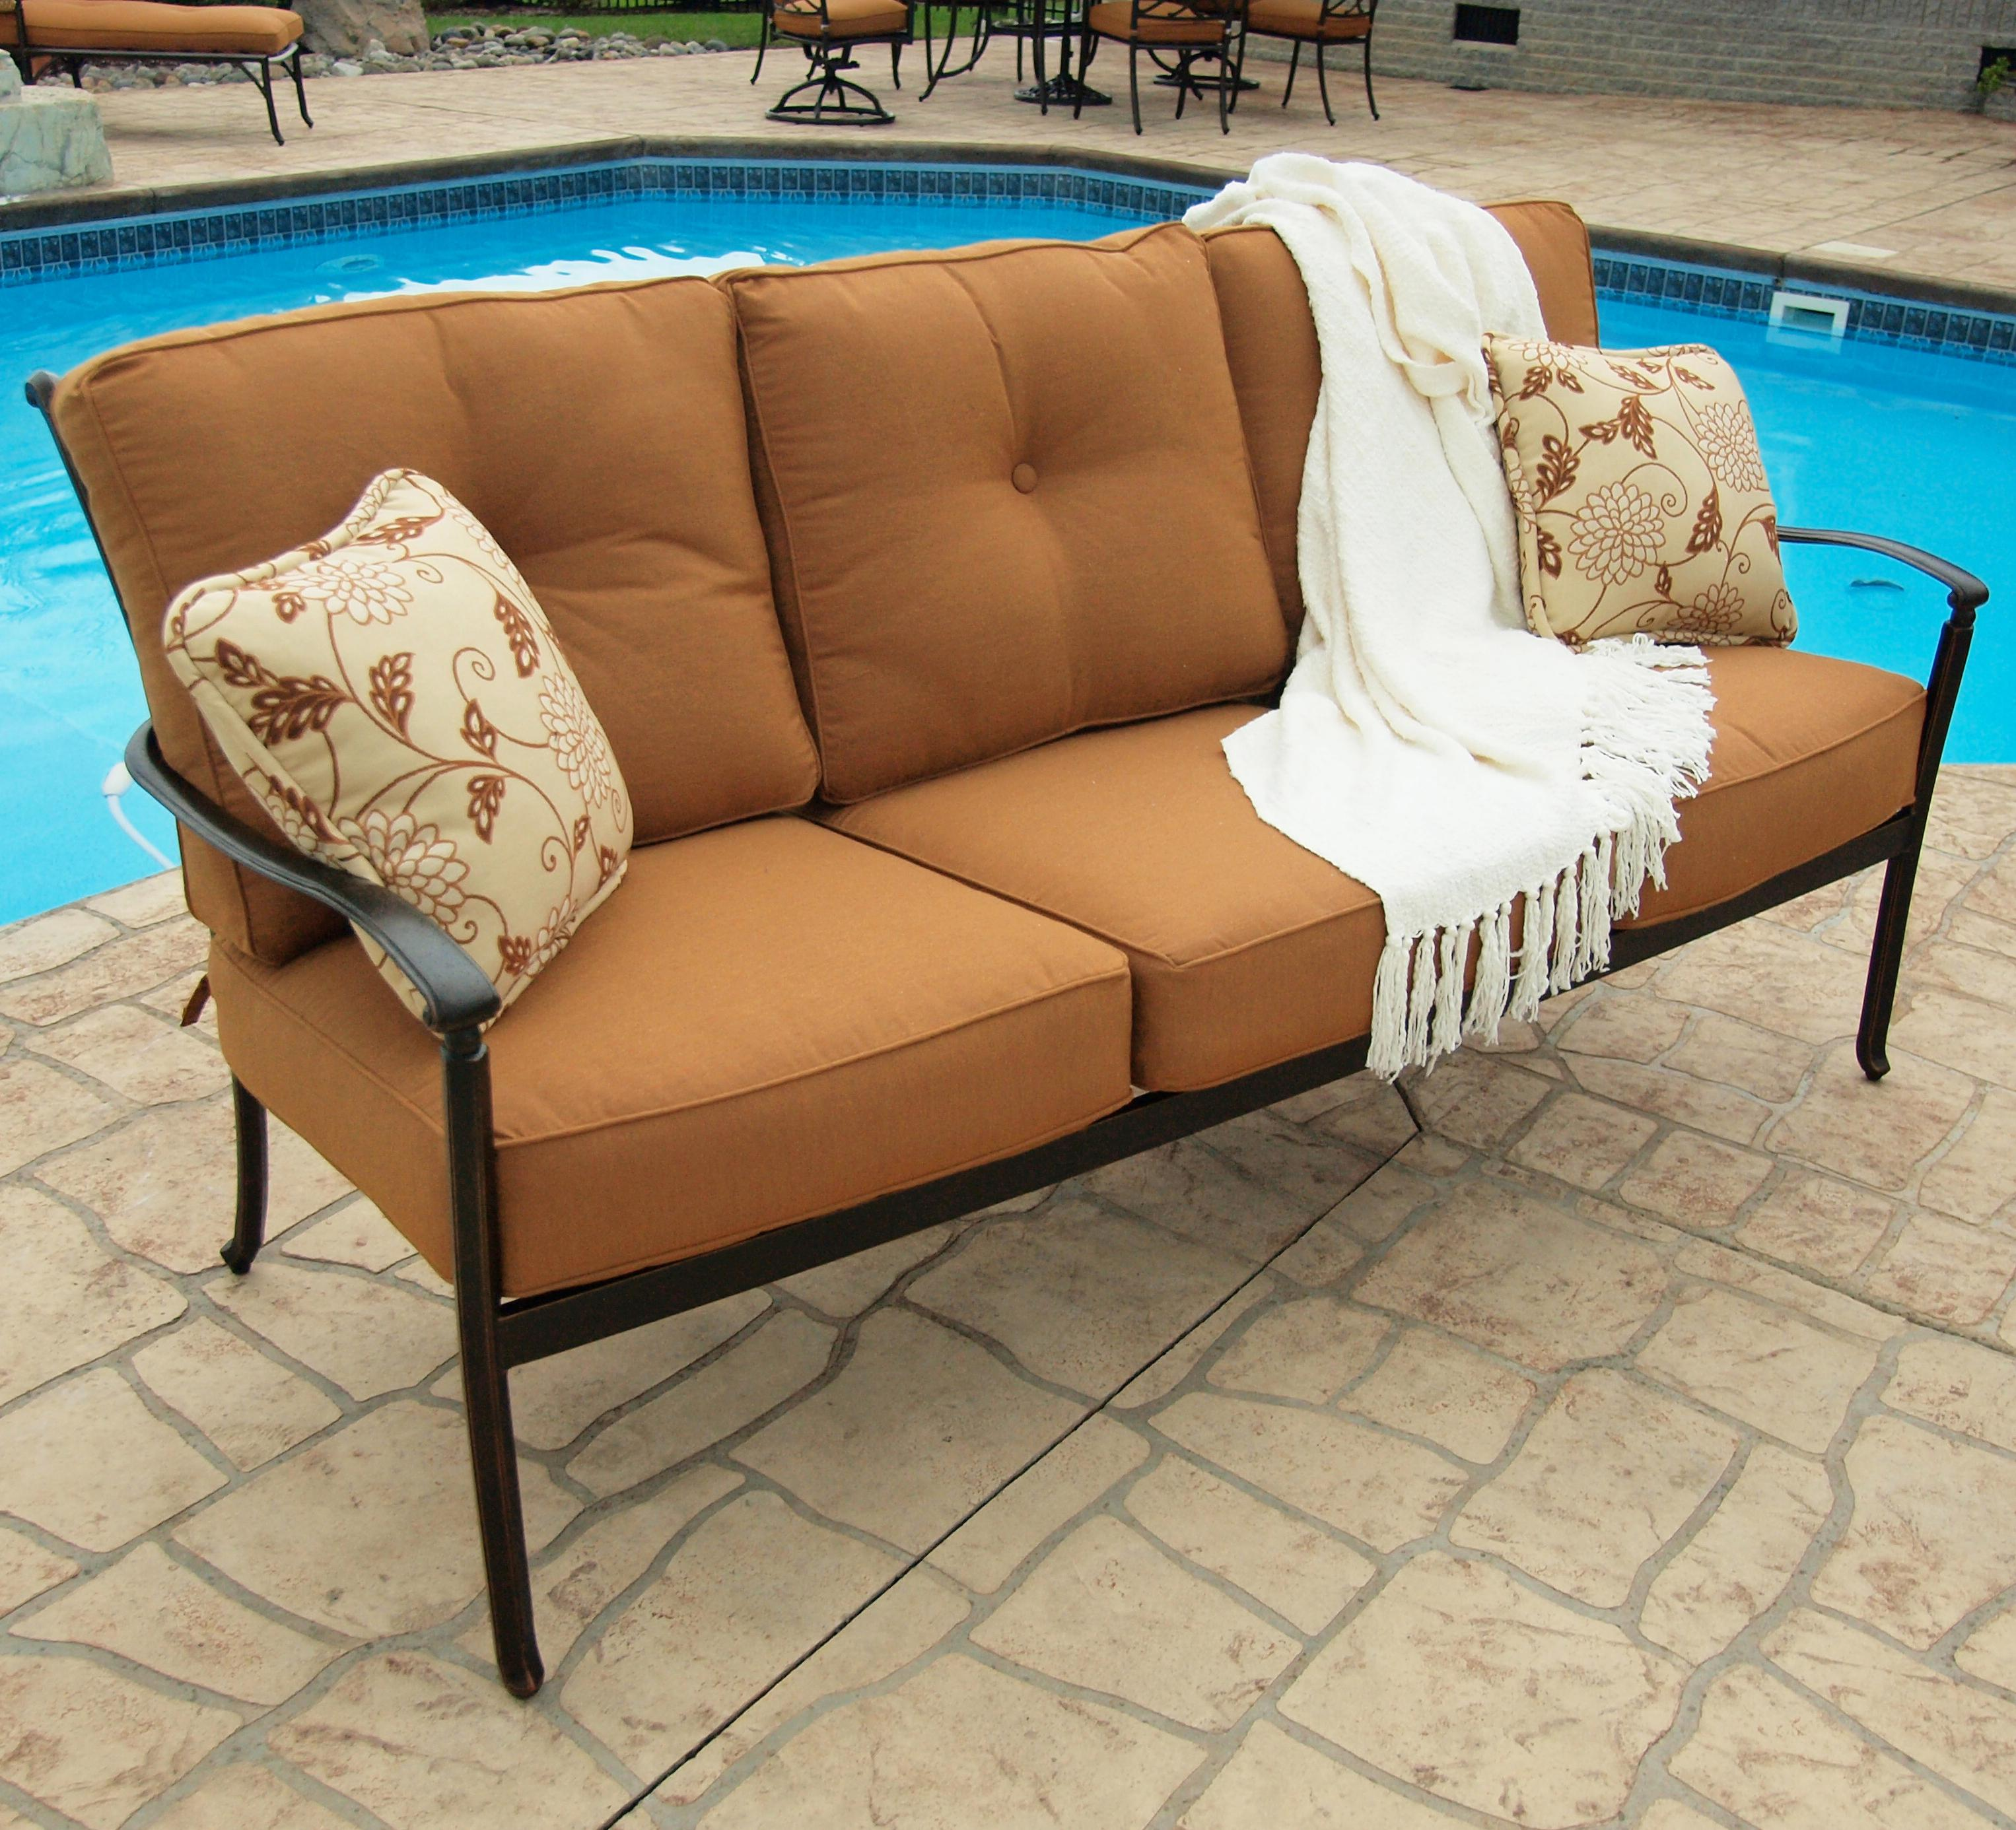 Agio Willowbrook Patio Furniture.Agio Willowbrook Deep Seat Alumicast Outdoor Sofa With 2 Accent